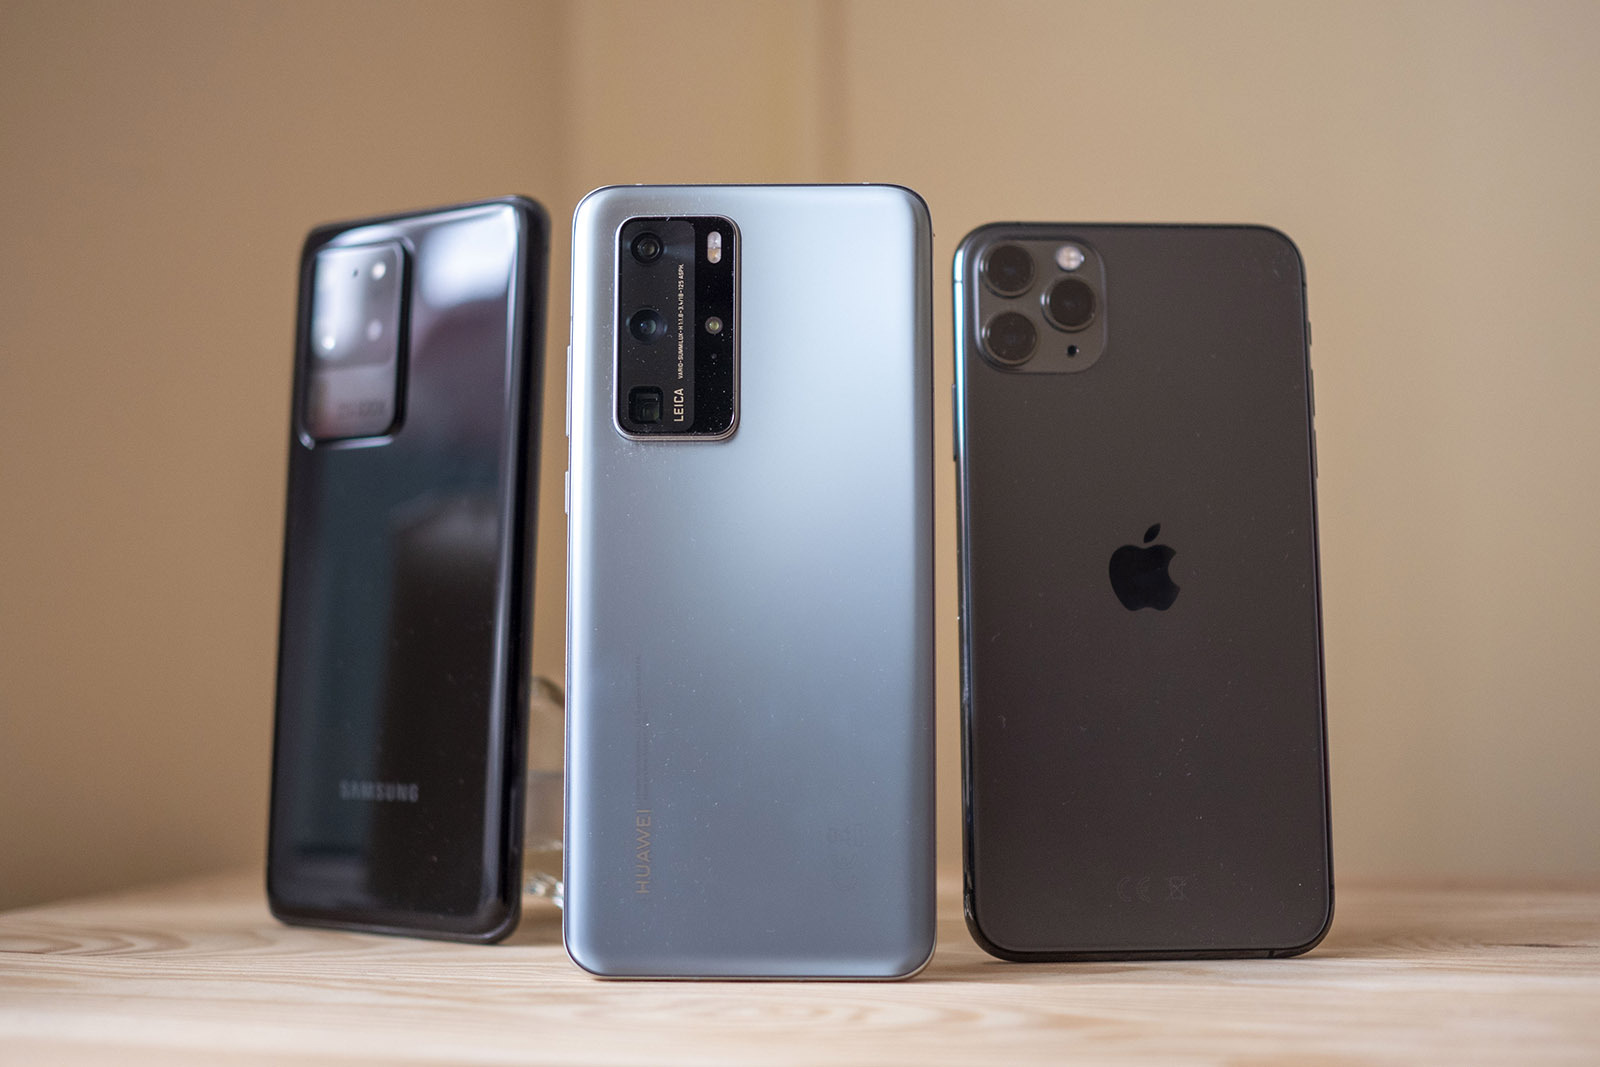 Apple-iPhone-11-Pro-vs-Huawei-P40-Pro-vs-Samsung-Galaxy-S20-Ultra